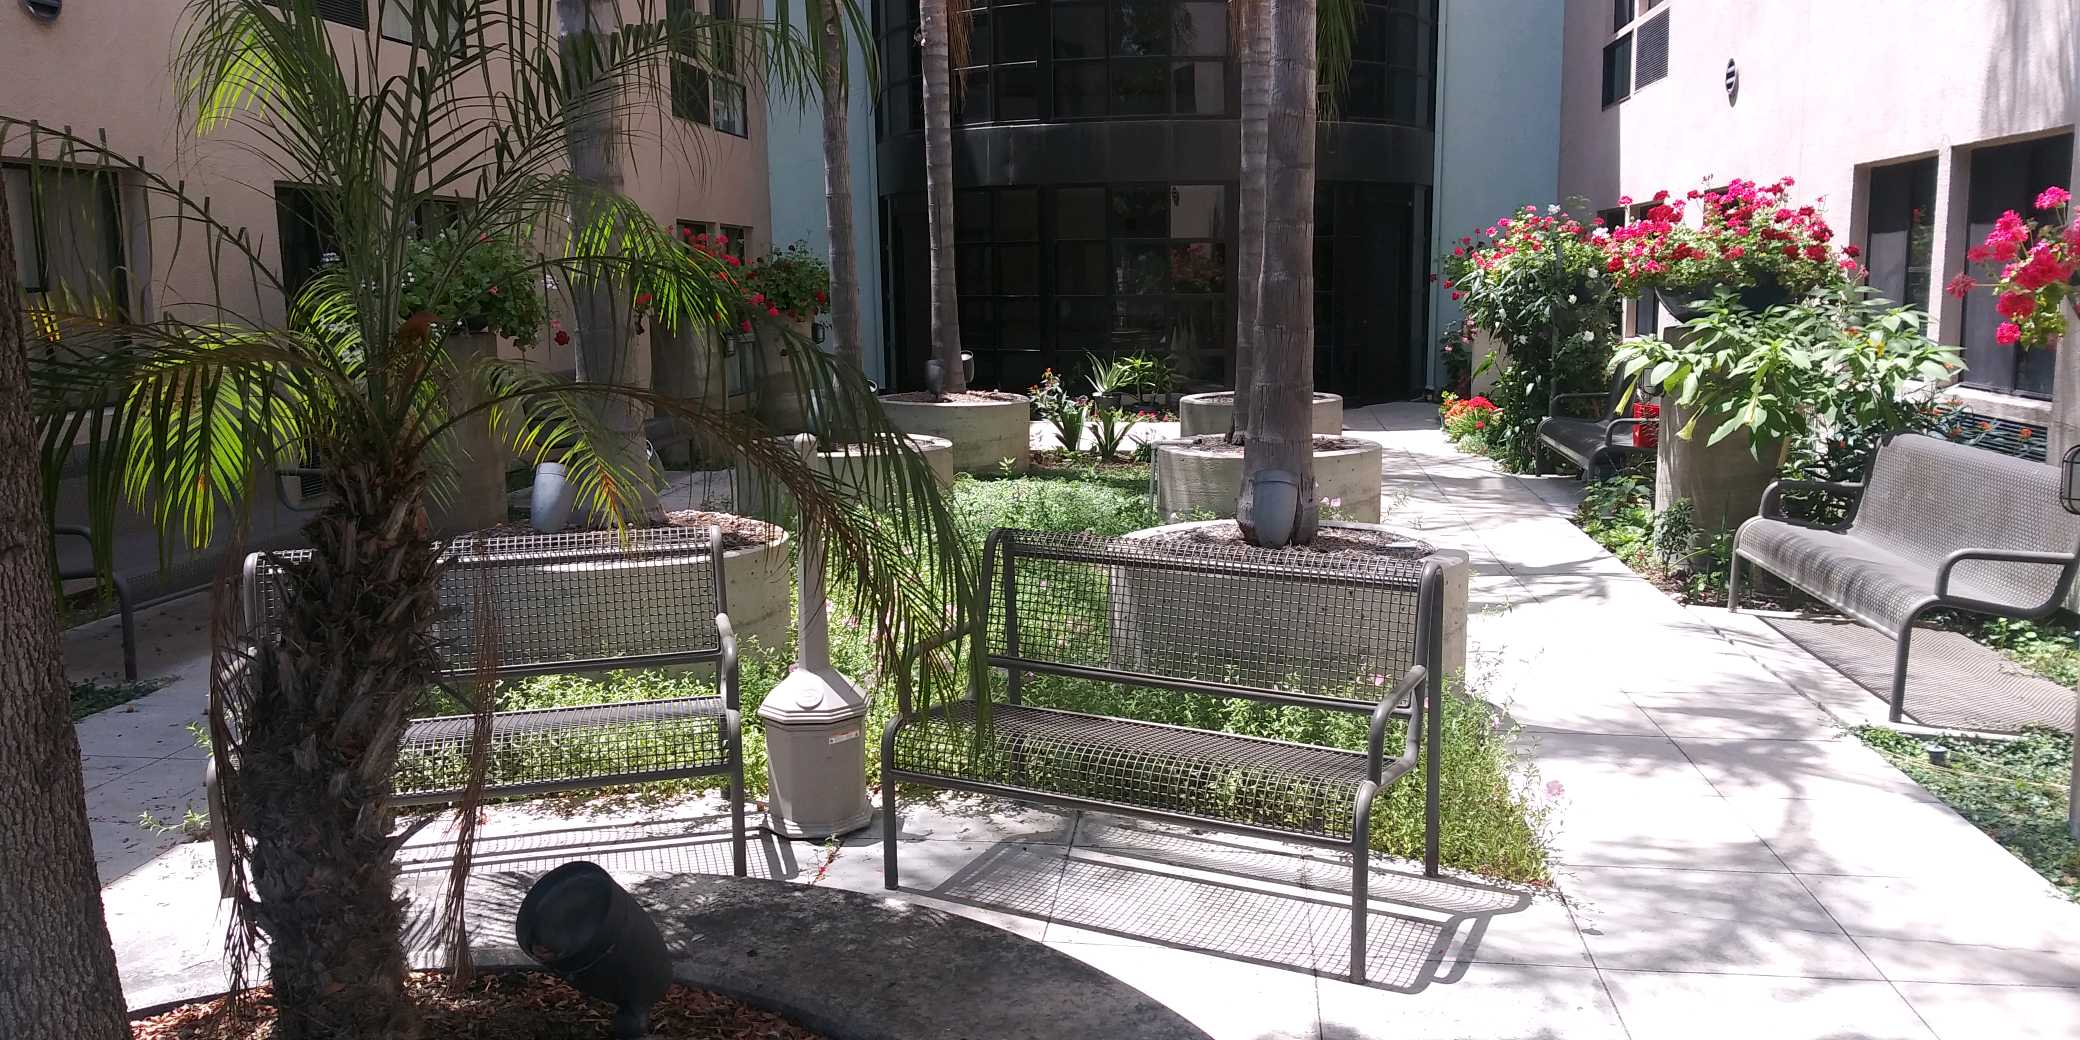 View of courtyard. In the center are six large evenly spaced palm trees in planters with side walk access on either side. Park bench seating throughout courtyard. Flower planters along building